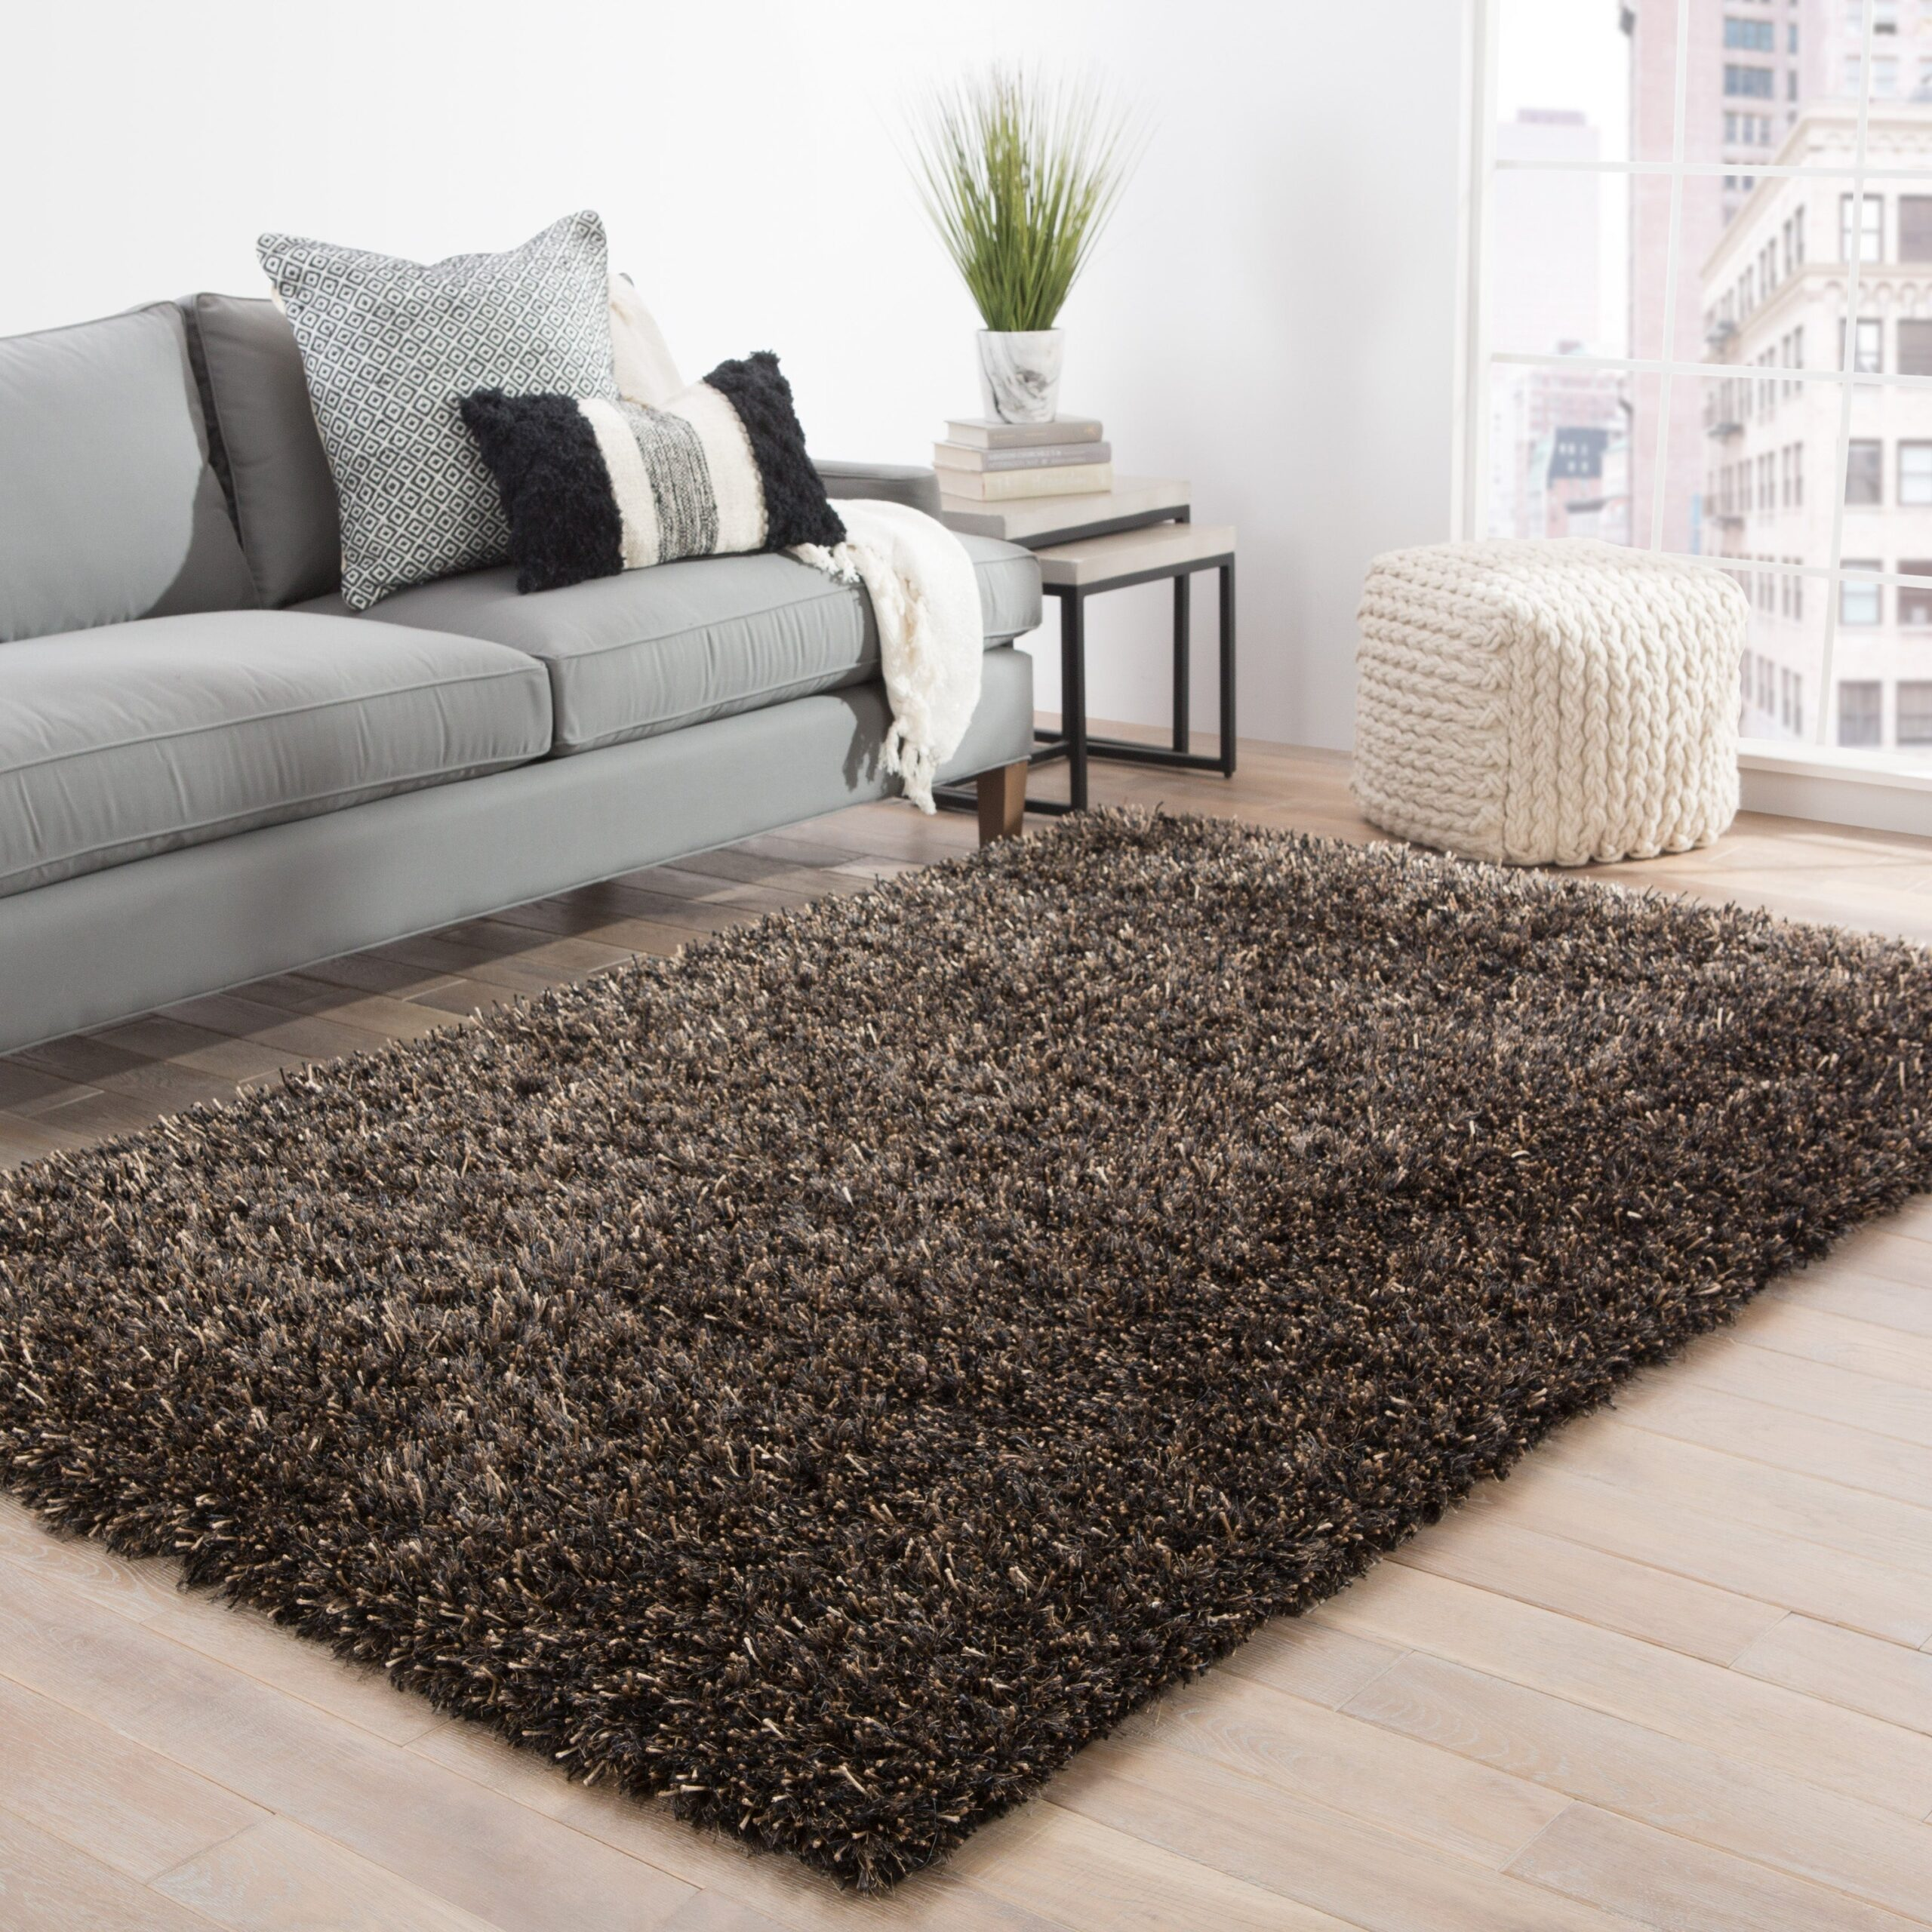 Uses of Shaggy Rugs in the Home